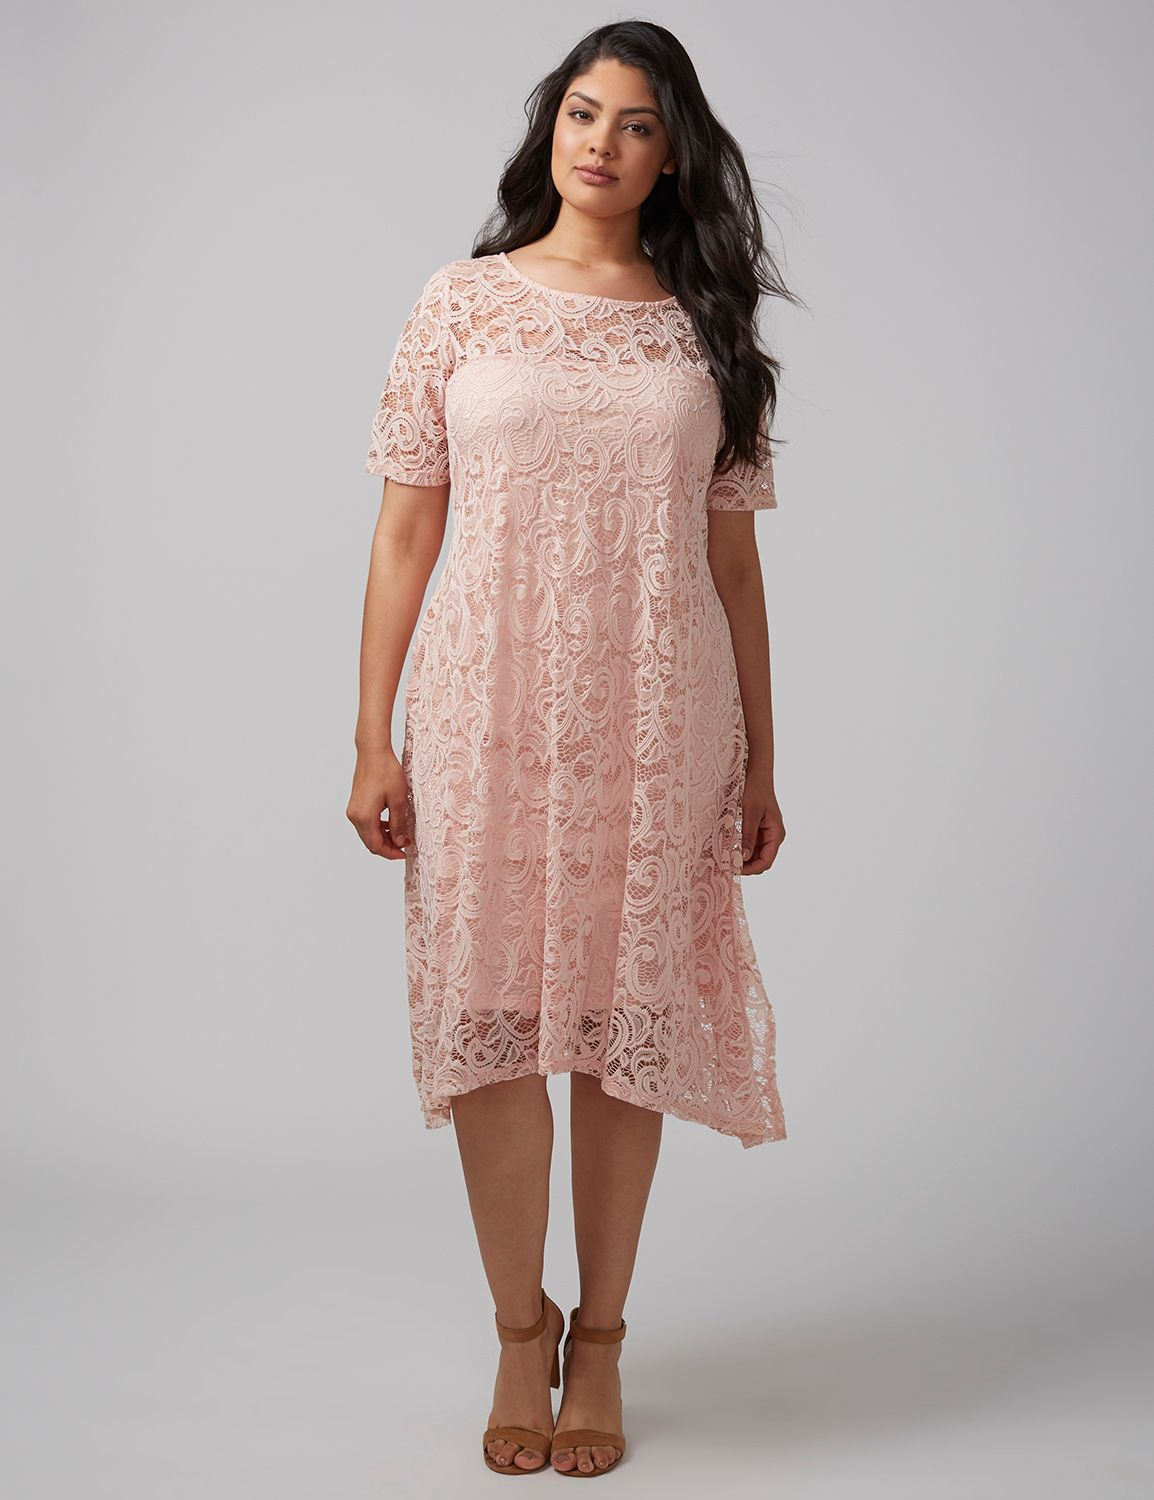 Does lane bryant have prom dresses - Dressed for less